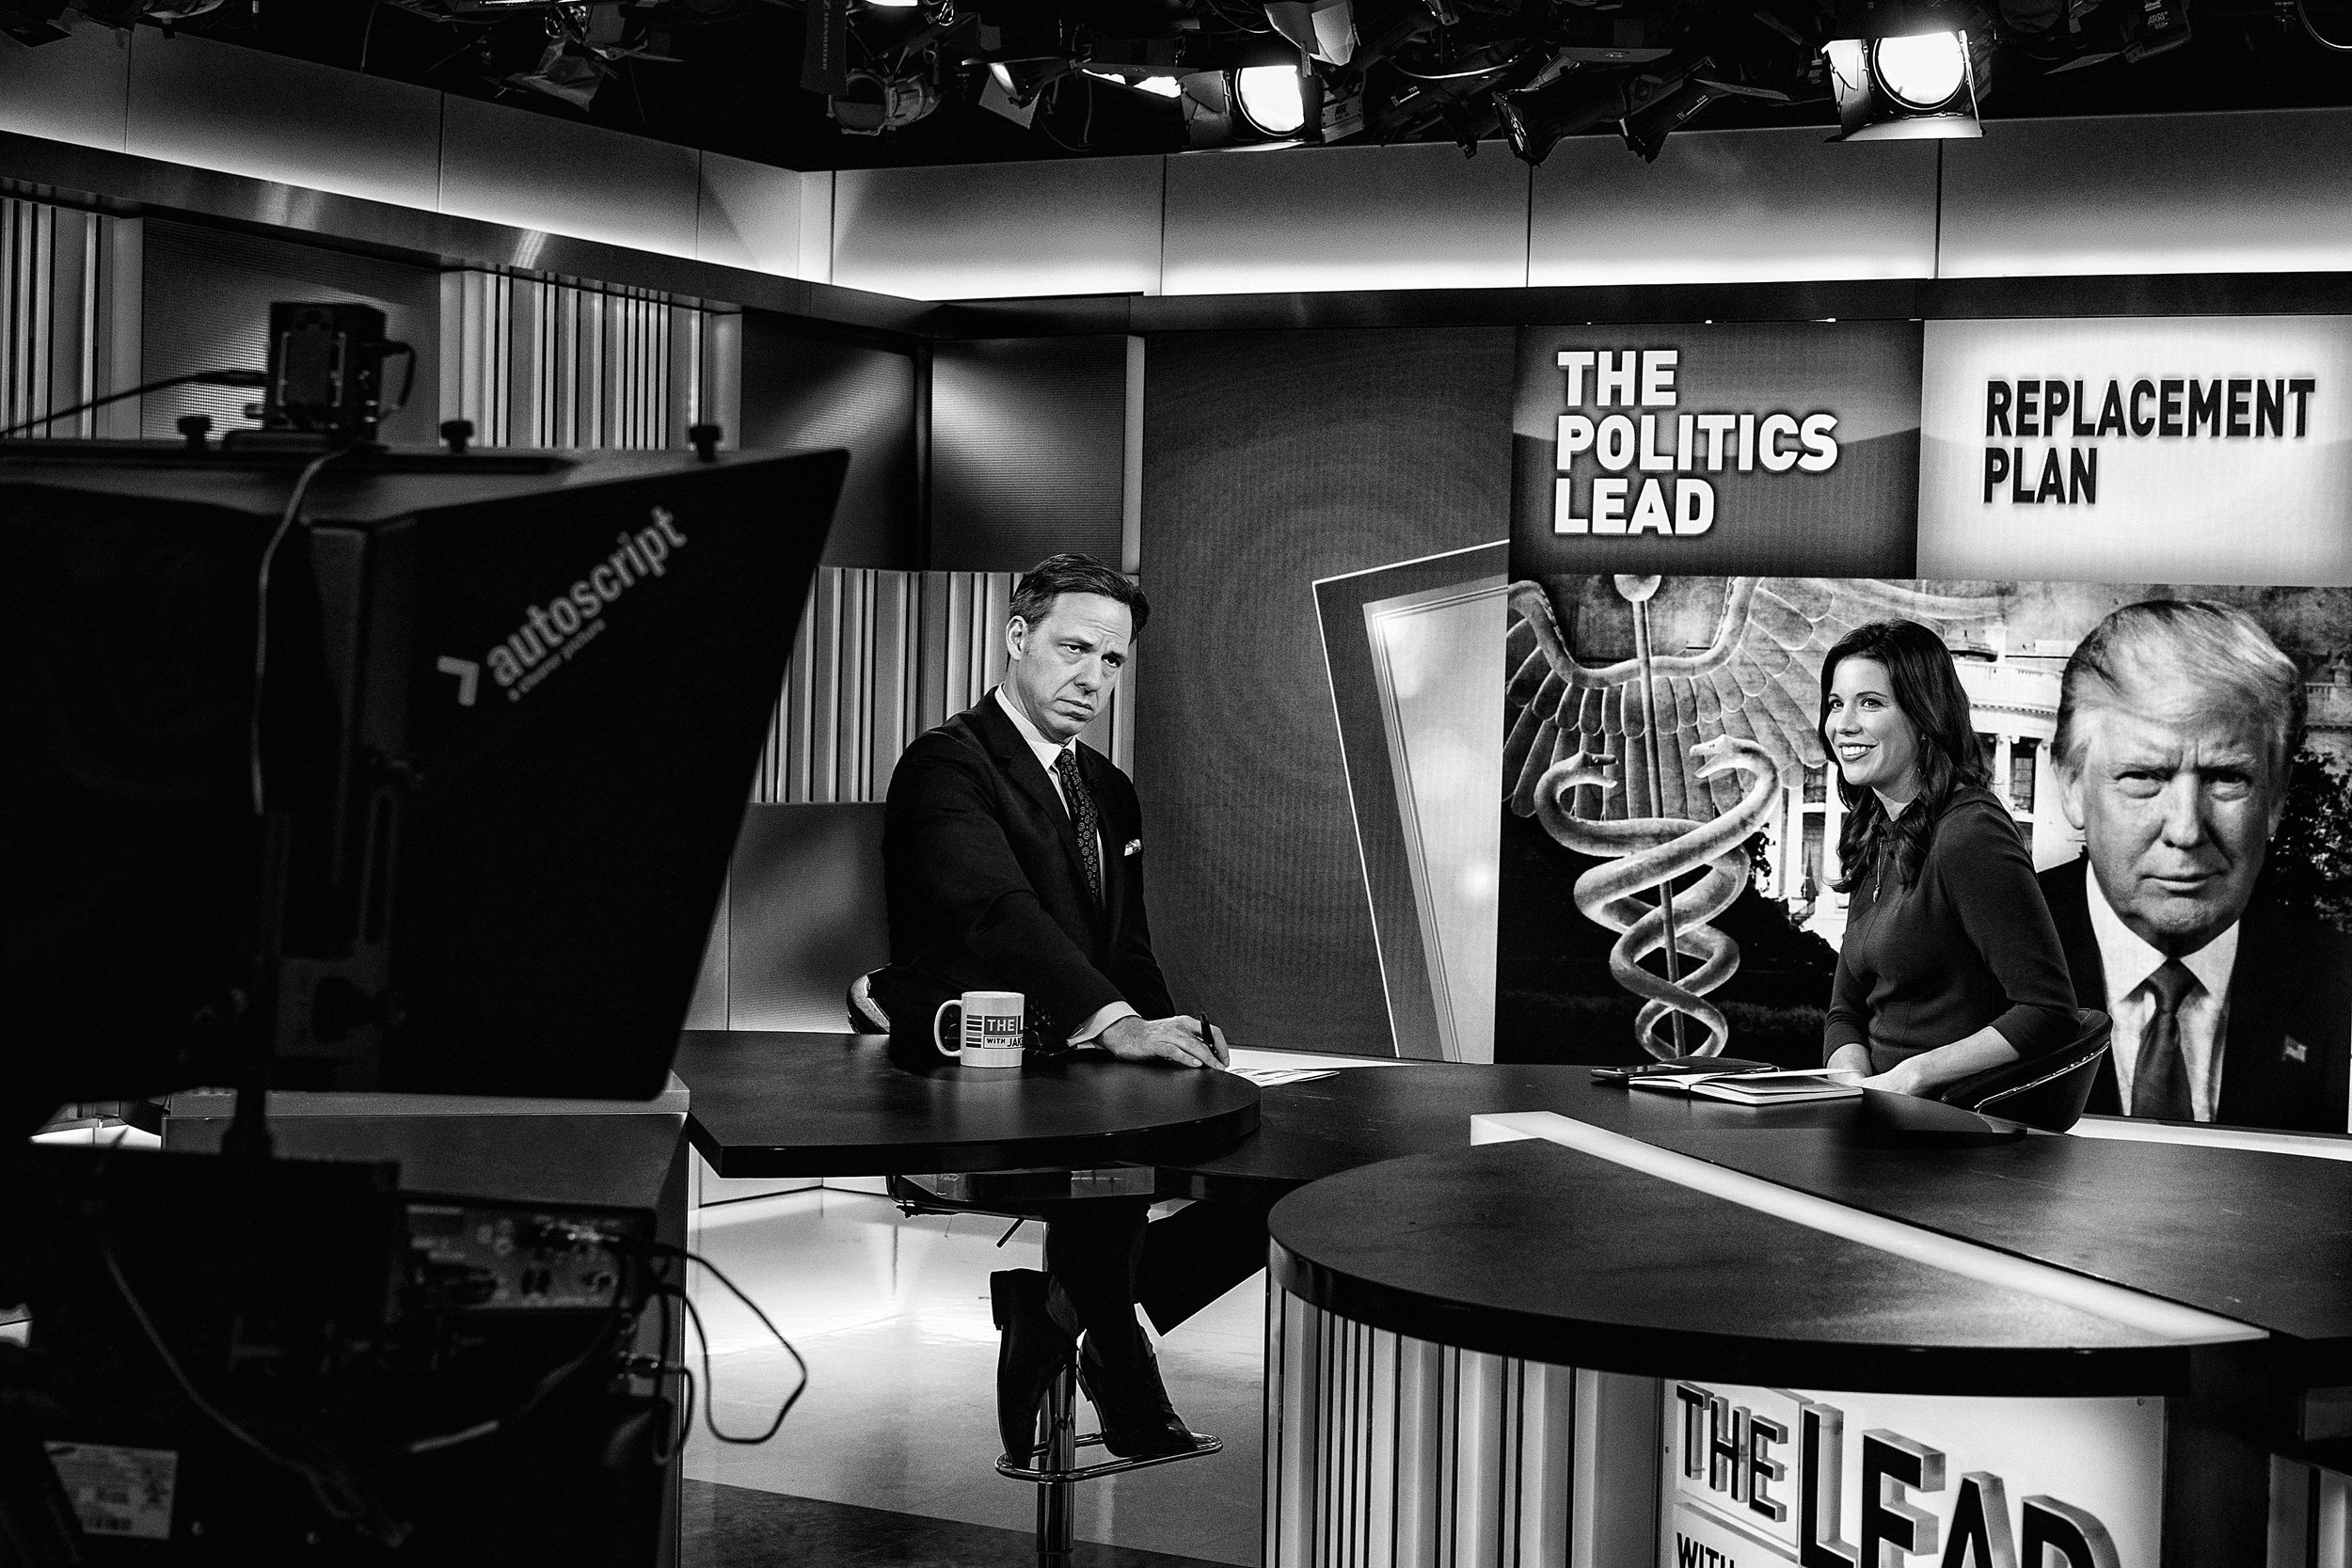 Day 40 : CNN Chief Washington Correspondent Jake Tapper on a commercial break during the taping of his weekday television news show, The Lead, on February 28, 2017.